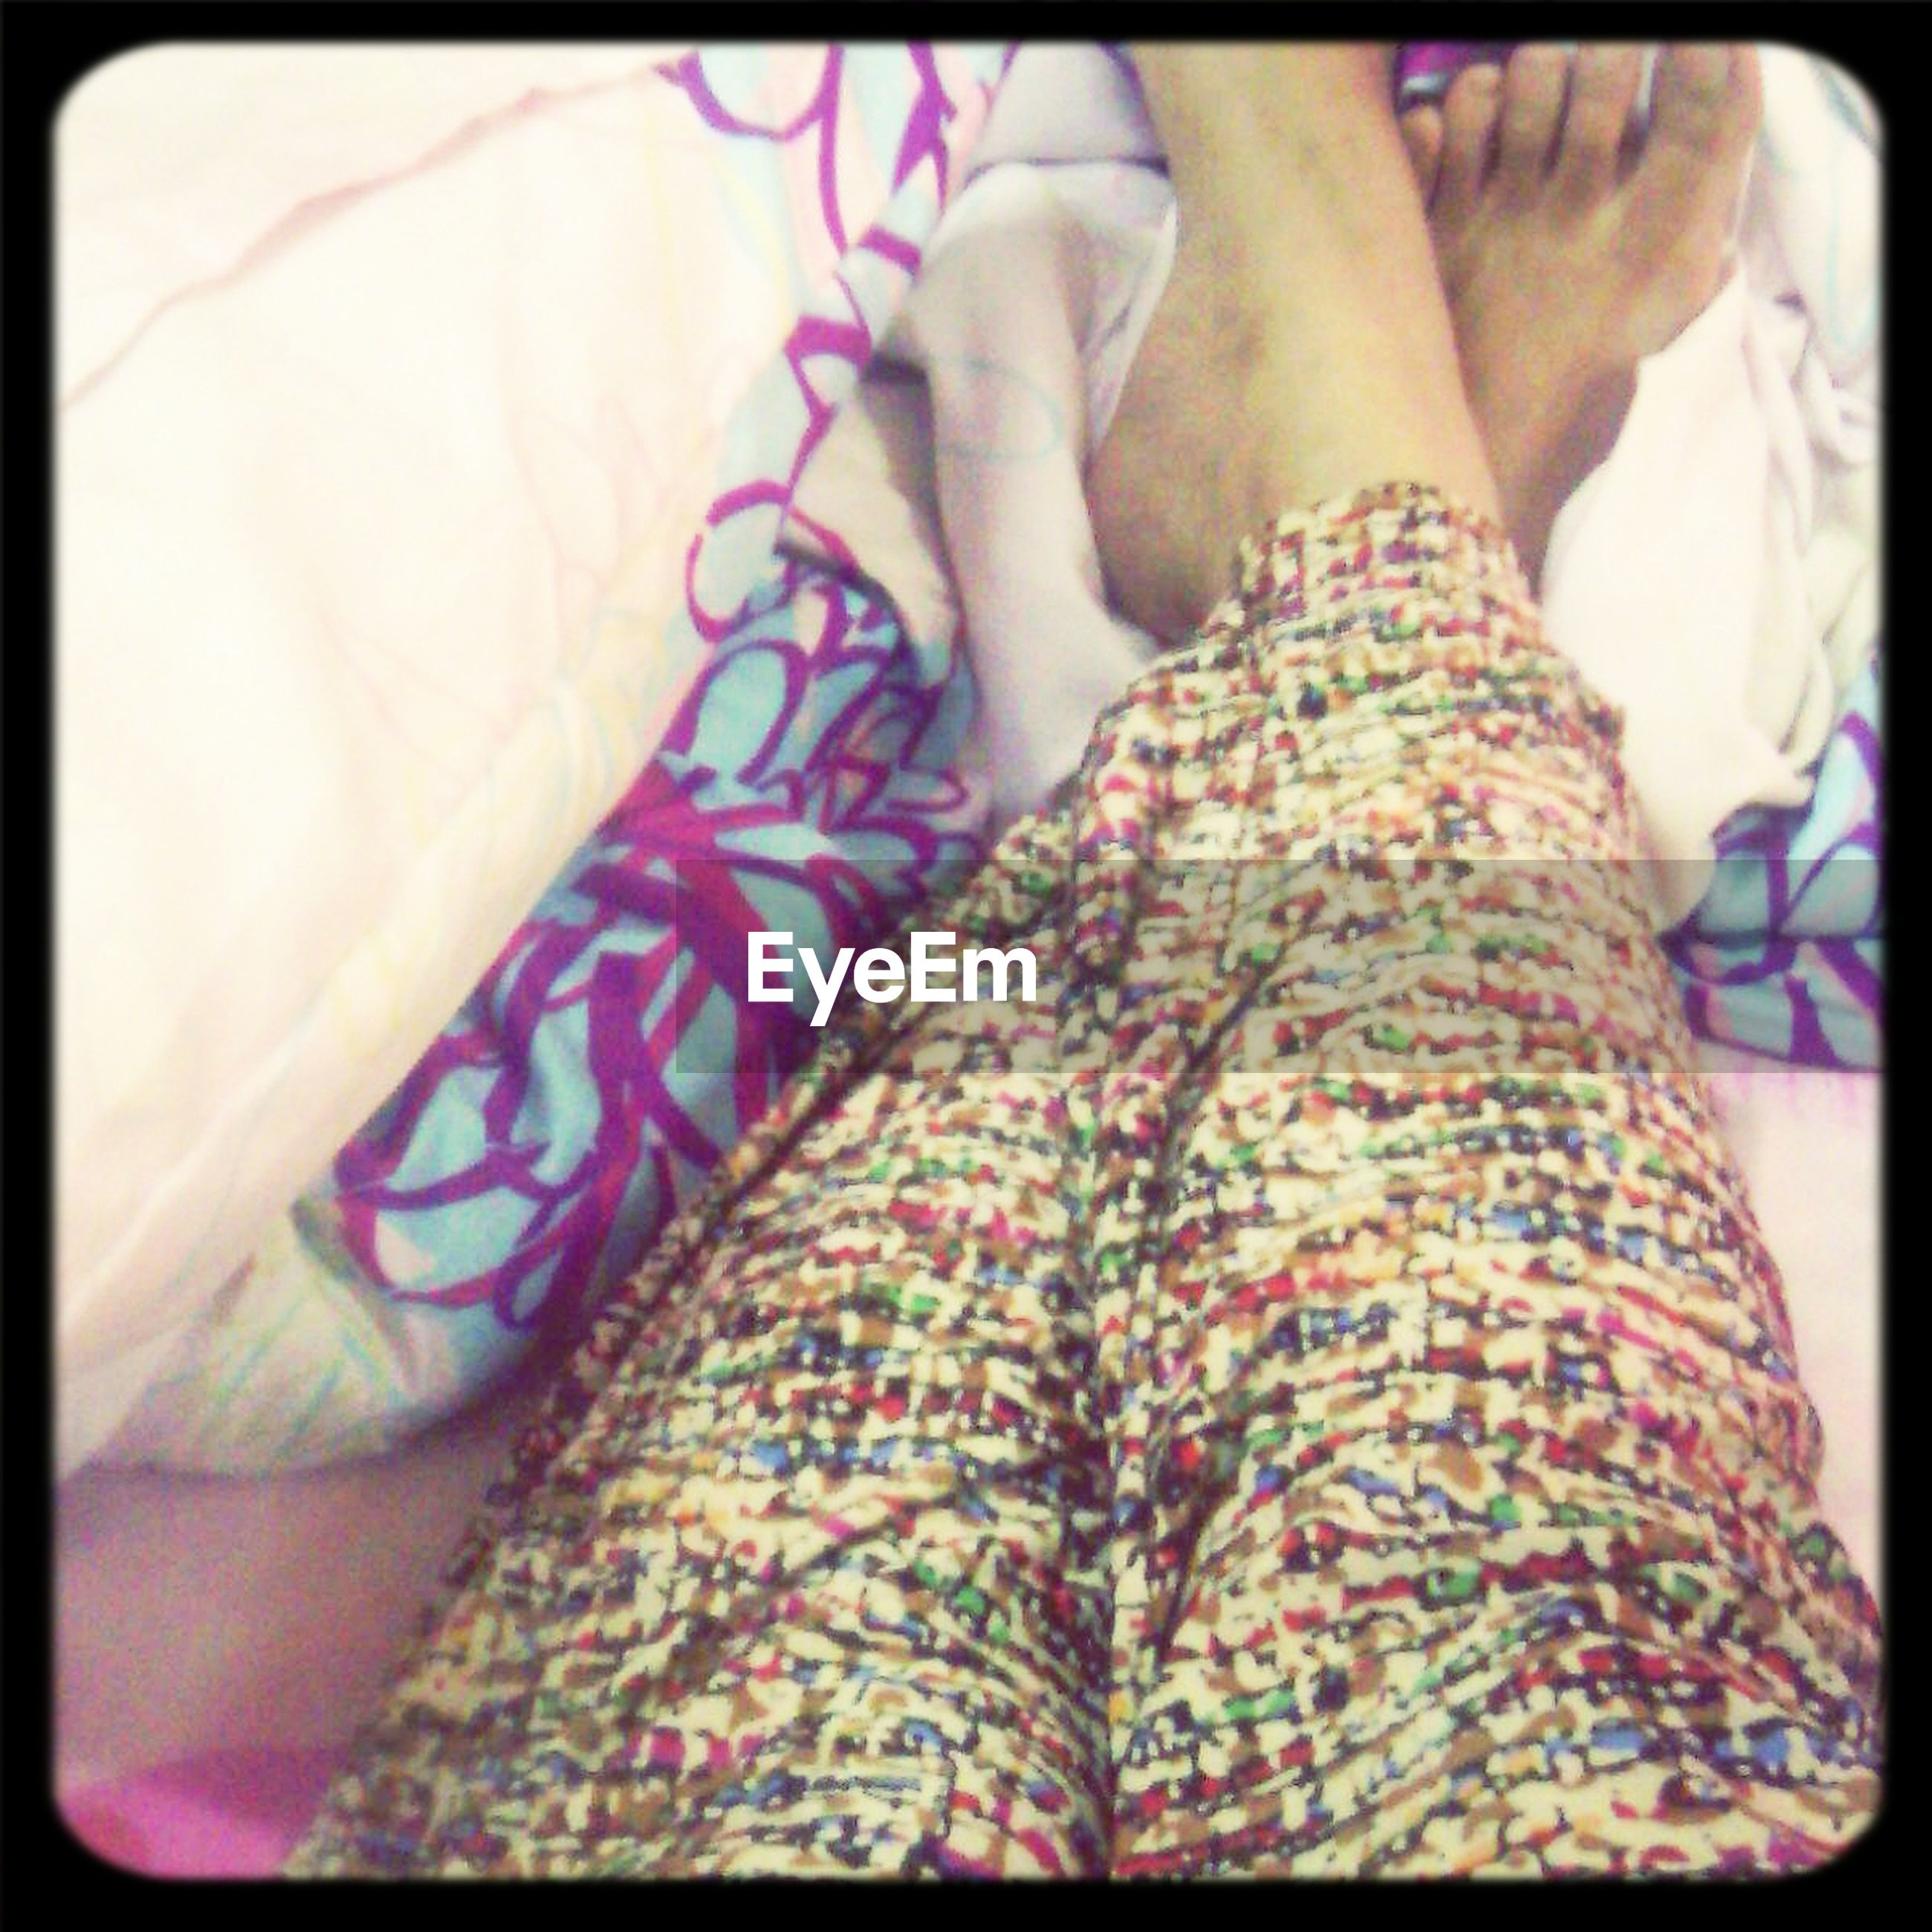 indoors, person, low section, lifestyles, transfer print, bed, midsection, barefoot, part of, leisure activity, human foot, auto post production filter, high angle view, relaxation